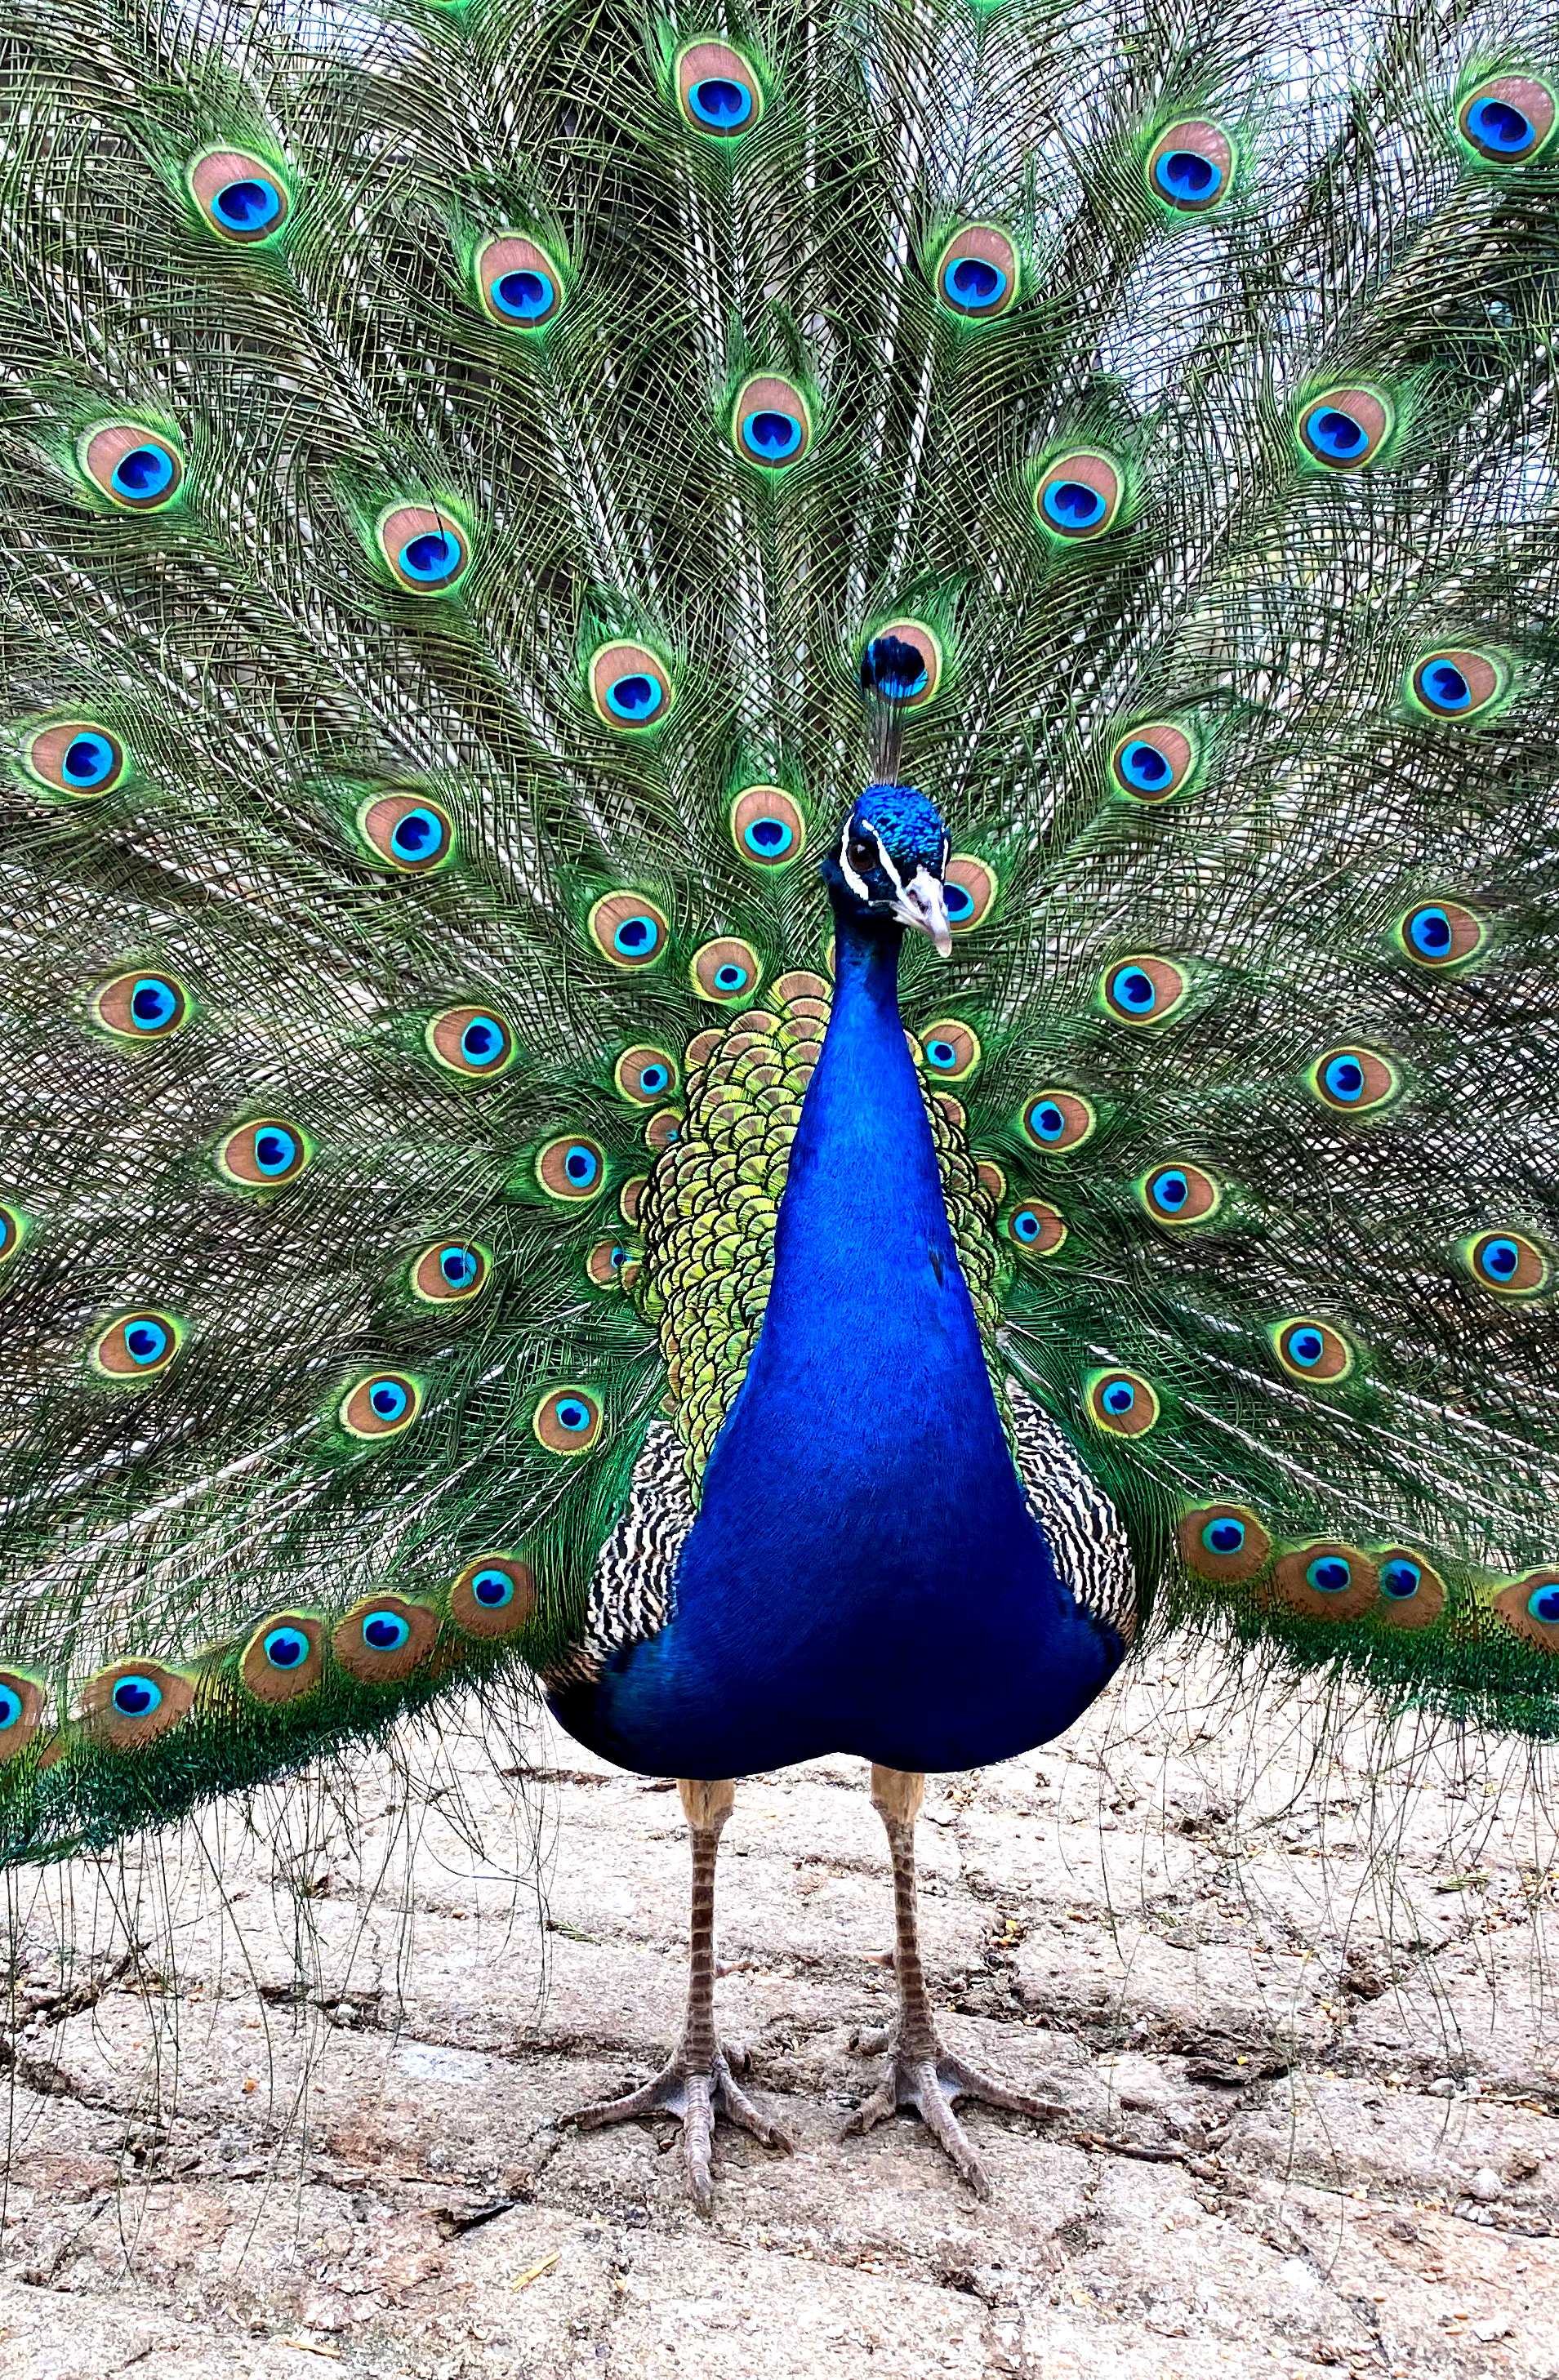 Duran the peacock is a nice challenge for artists